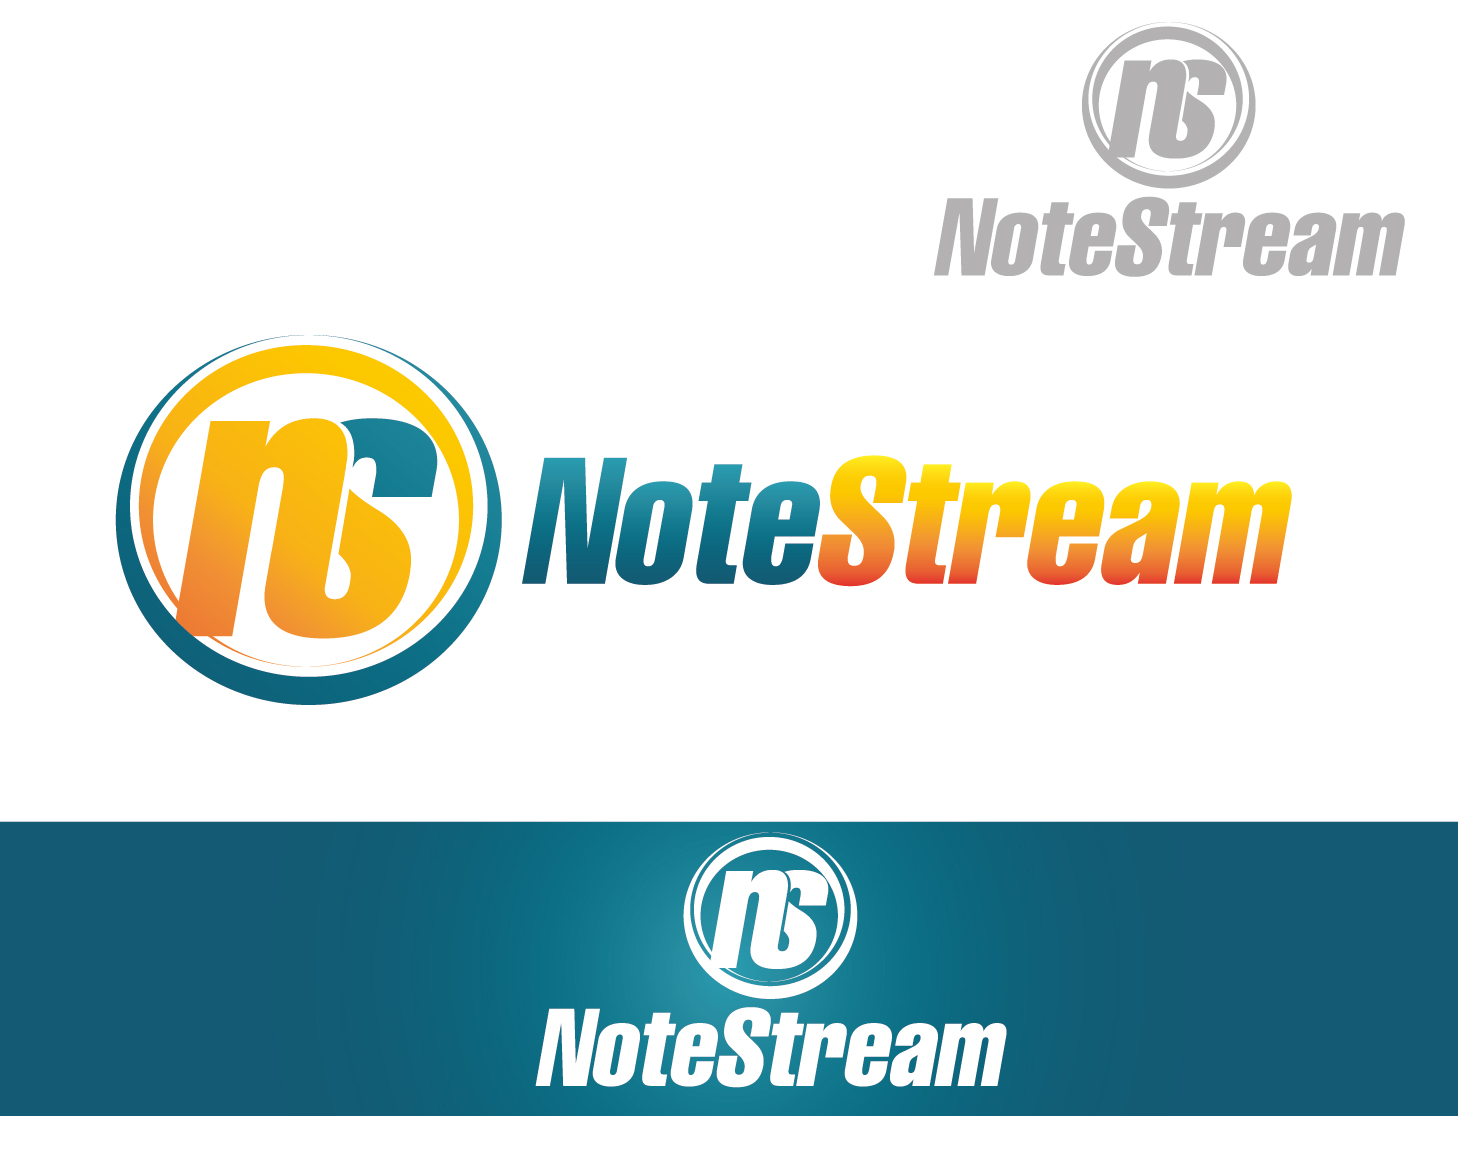 Logo Design by VENTSISLAV KOVACHEV - Entry No. 28 in the Logo Design Contest Imaginative Logo Design for NoteStream.